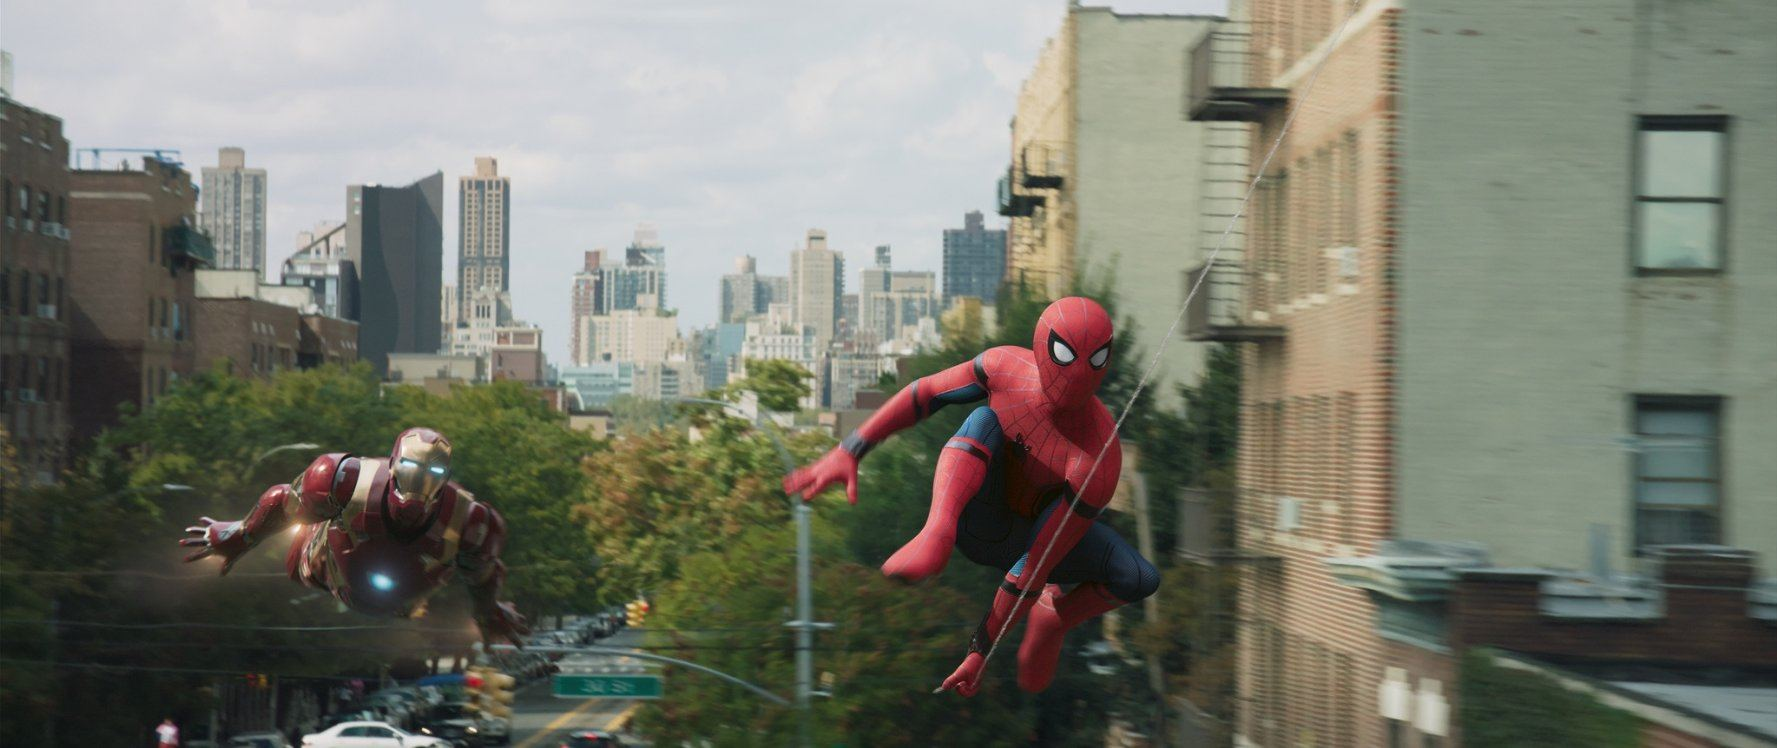 Iron Man and Spider-Man in Spider-Man: Homecoming